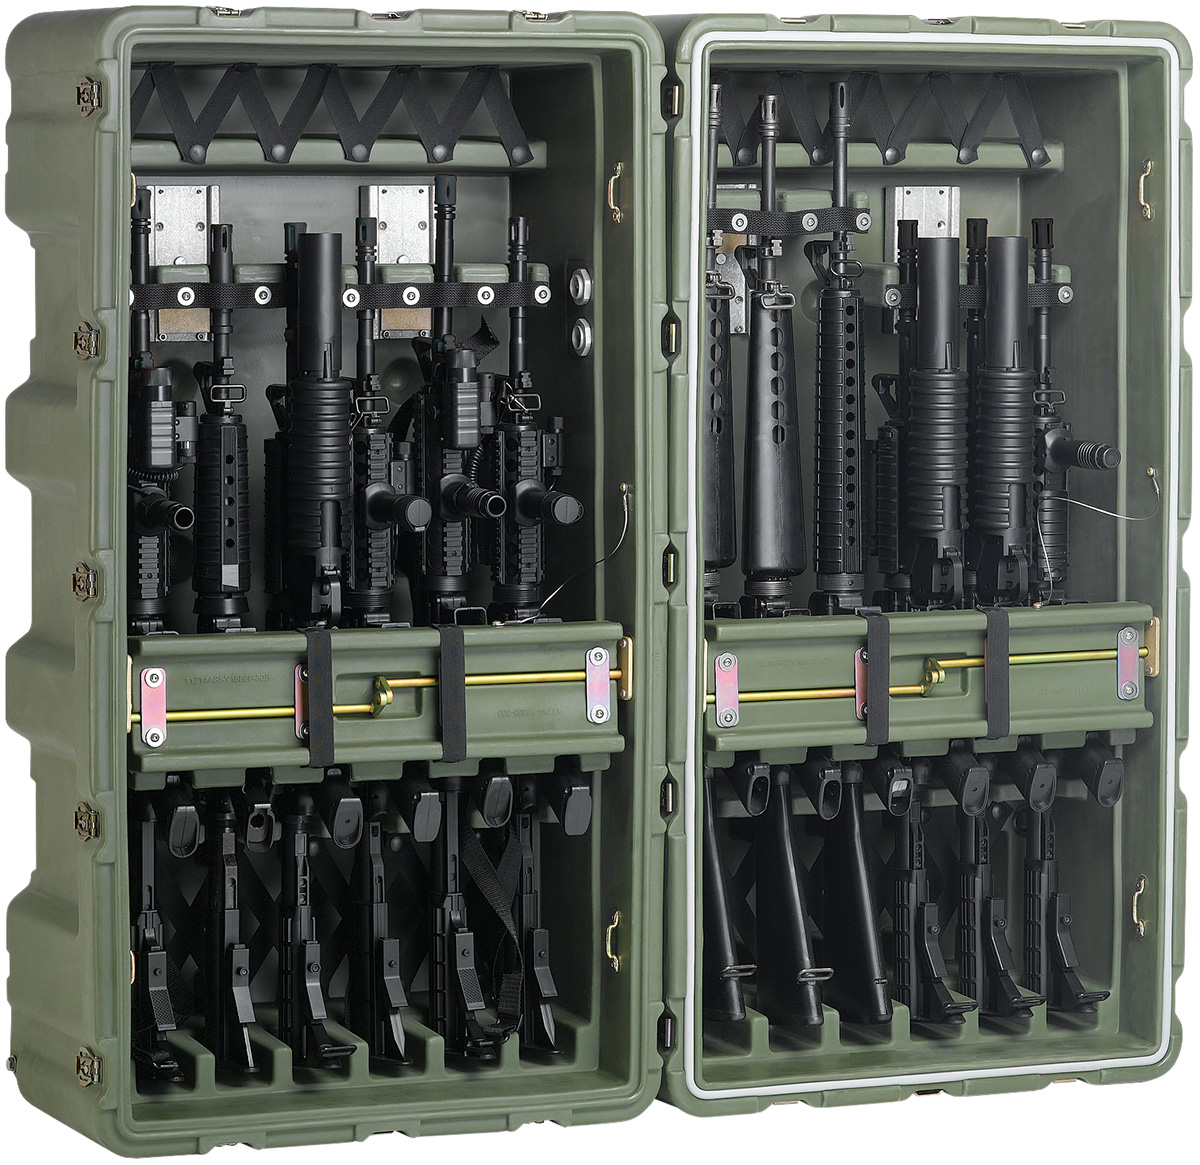 pelican usa military m4 m16 large case